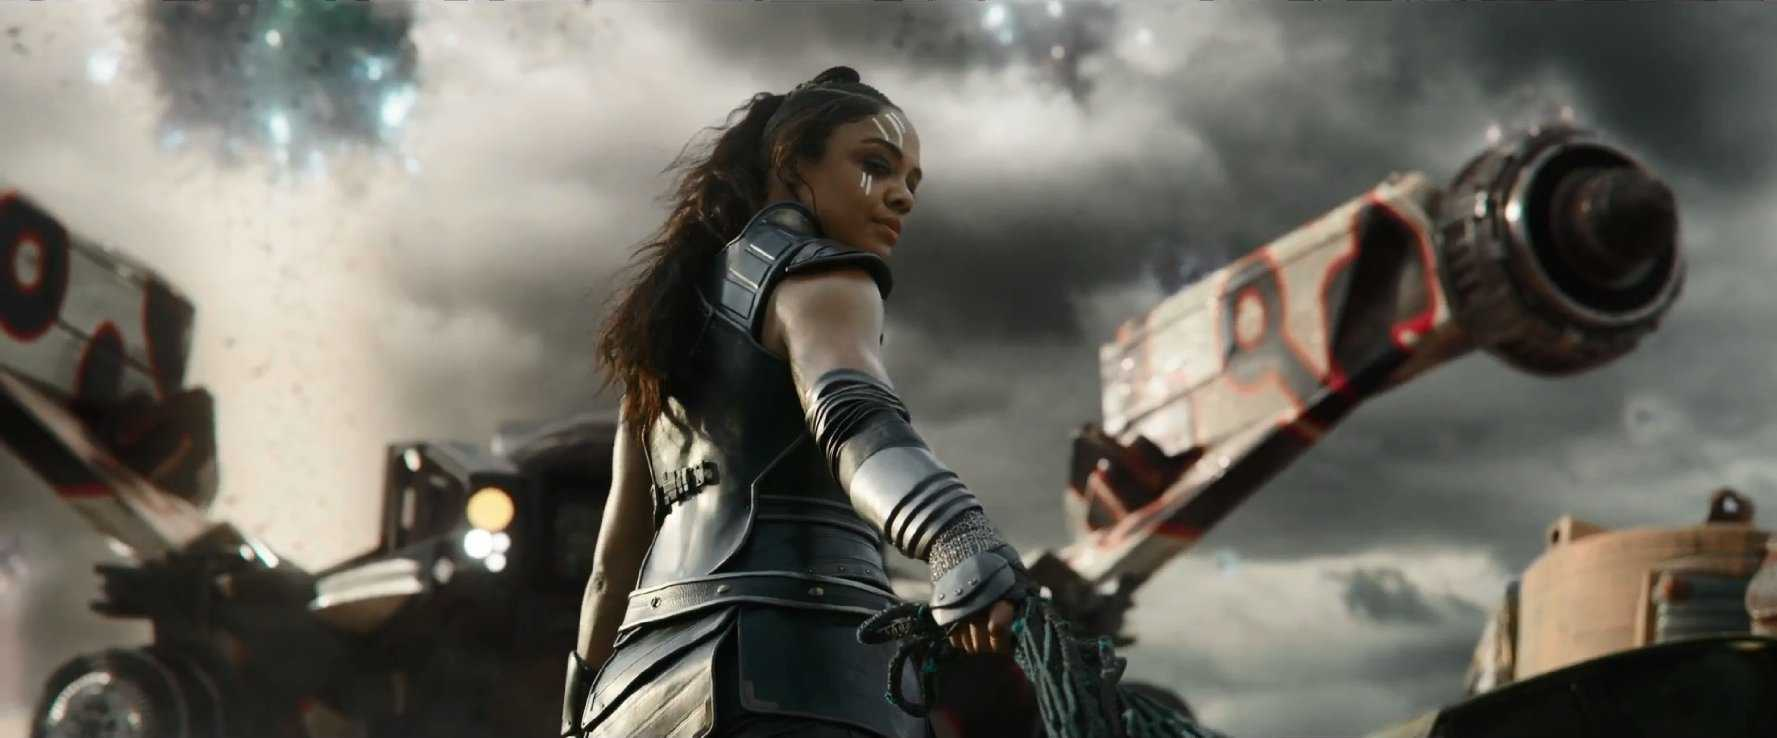 Thor: Ragnarok's Tessa Thompson Reveals That Her Character Valkyrie Is Bisexual | tessa thompson